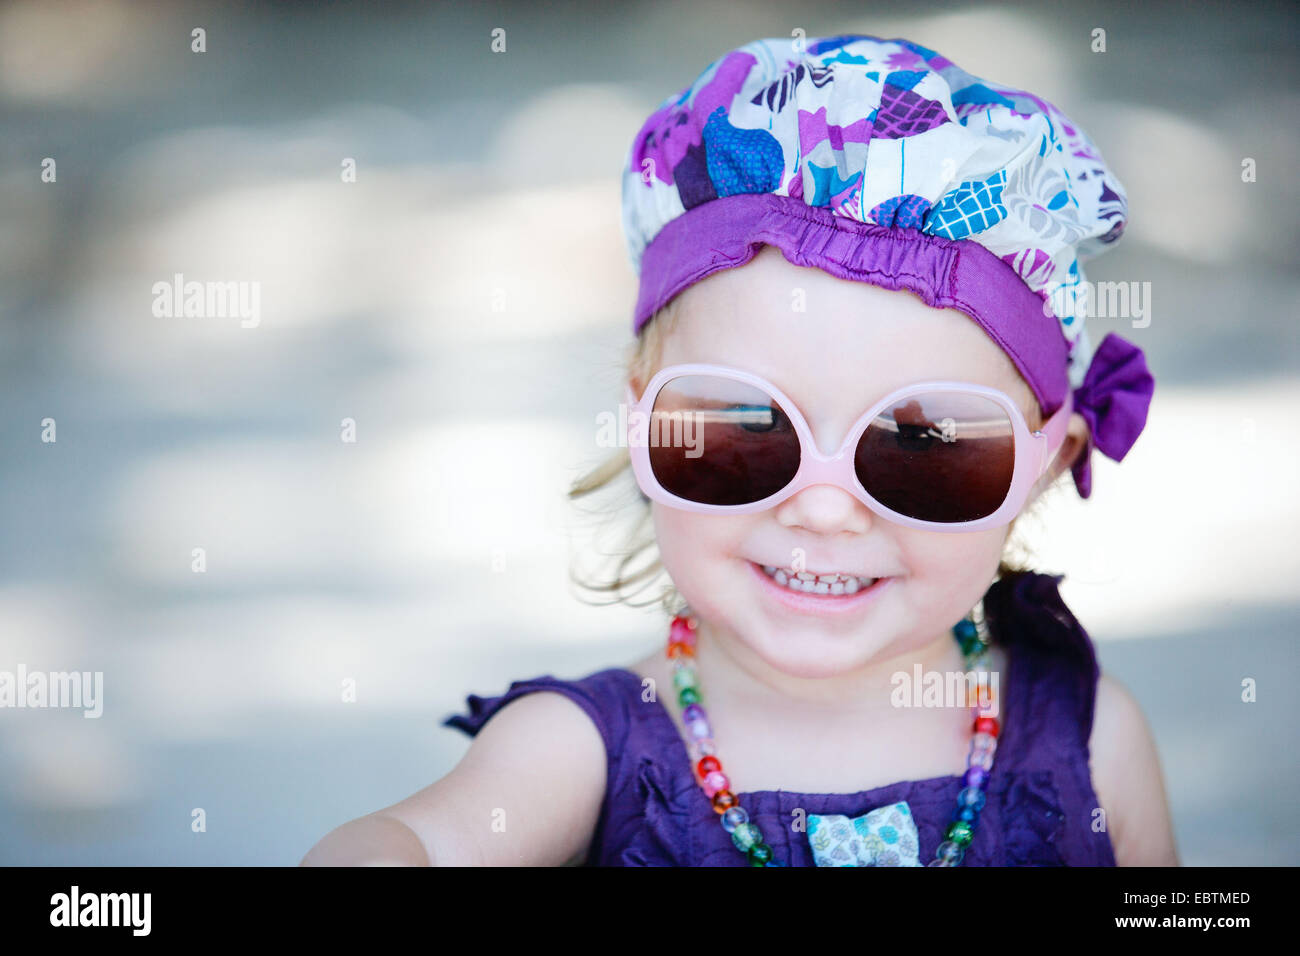 portrait of a little girl wearing sunglasses and fancy clothes Stock Photo